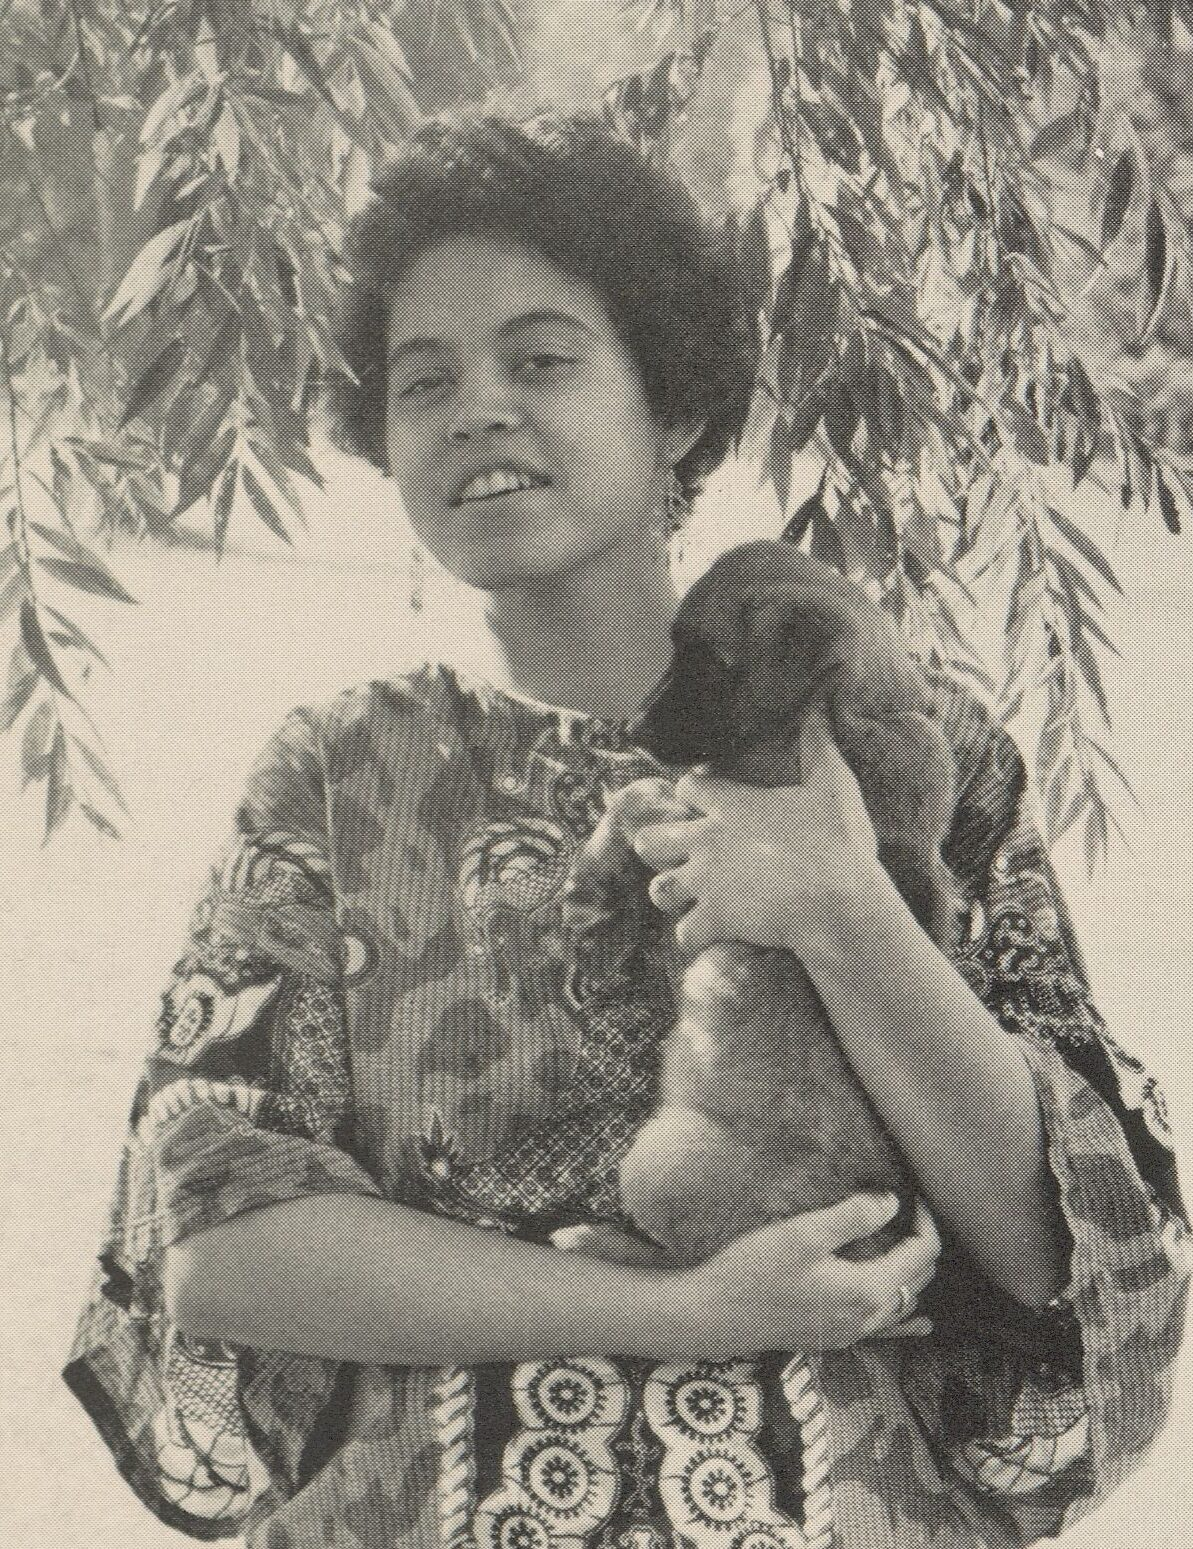 Yearbook photograph of Mindy Thompson. She wears a dashiki and Afro and is smiling and holding a small dog.